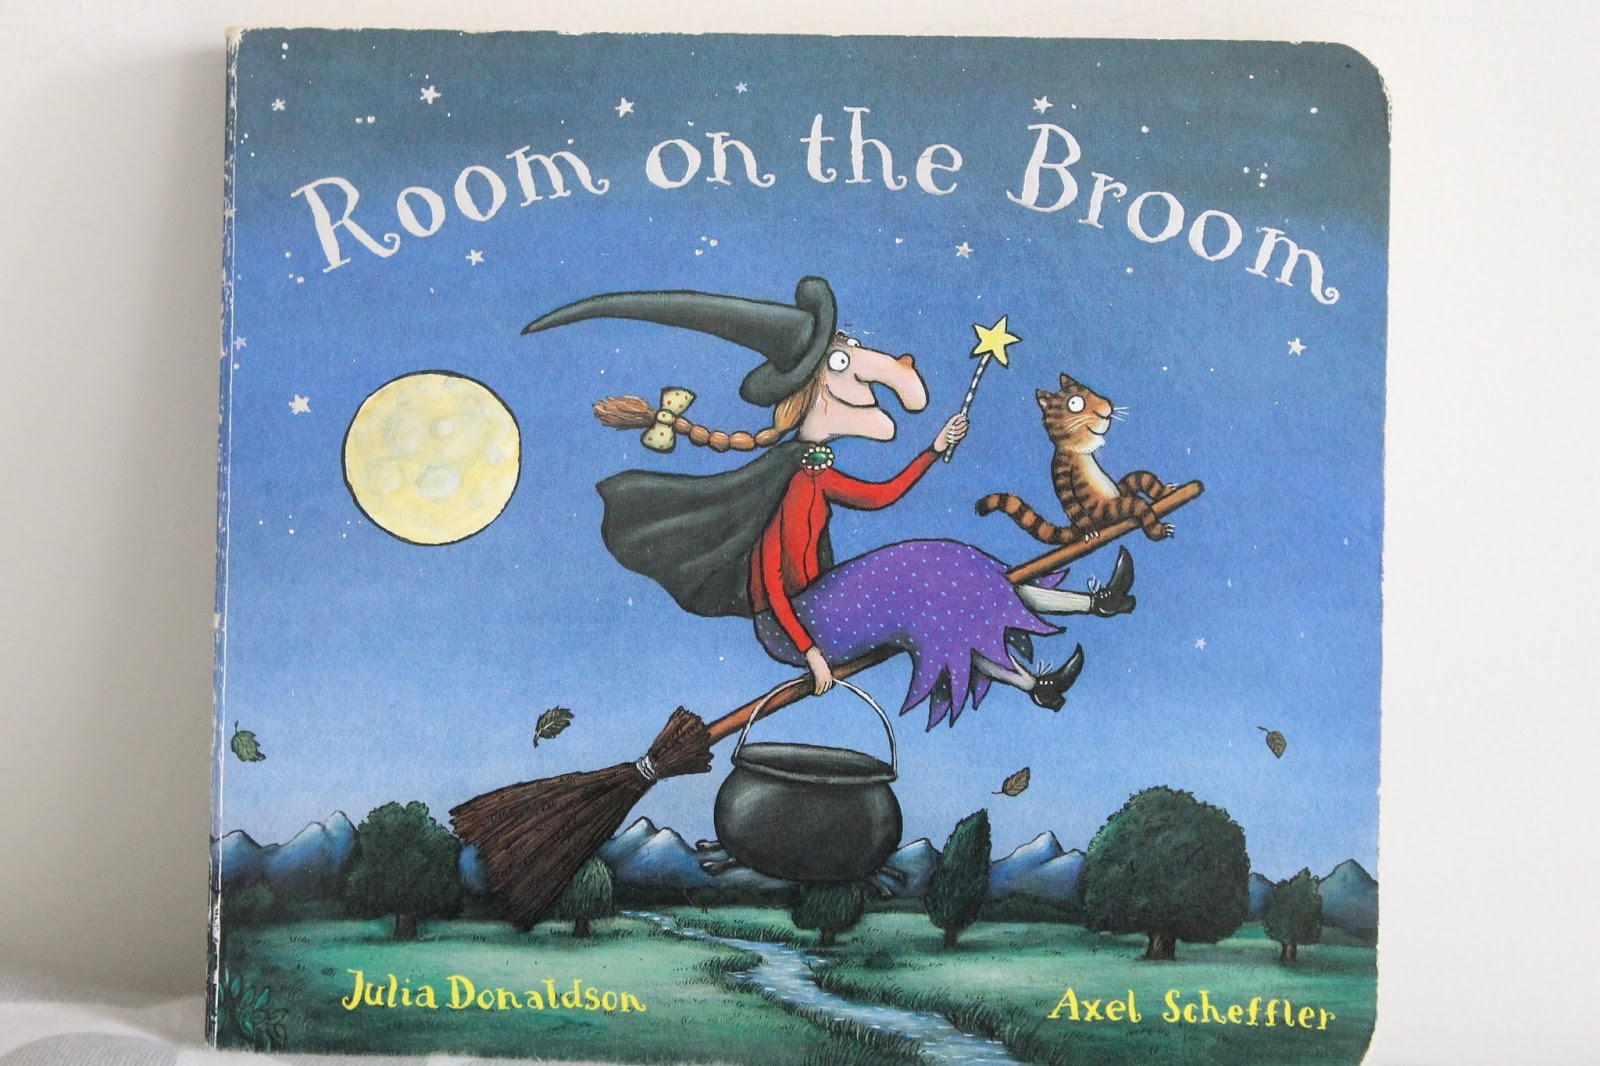 kids books halloween, halloween books, childrens books for halloween, toddler books for halloween, room on the broom